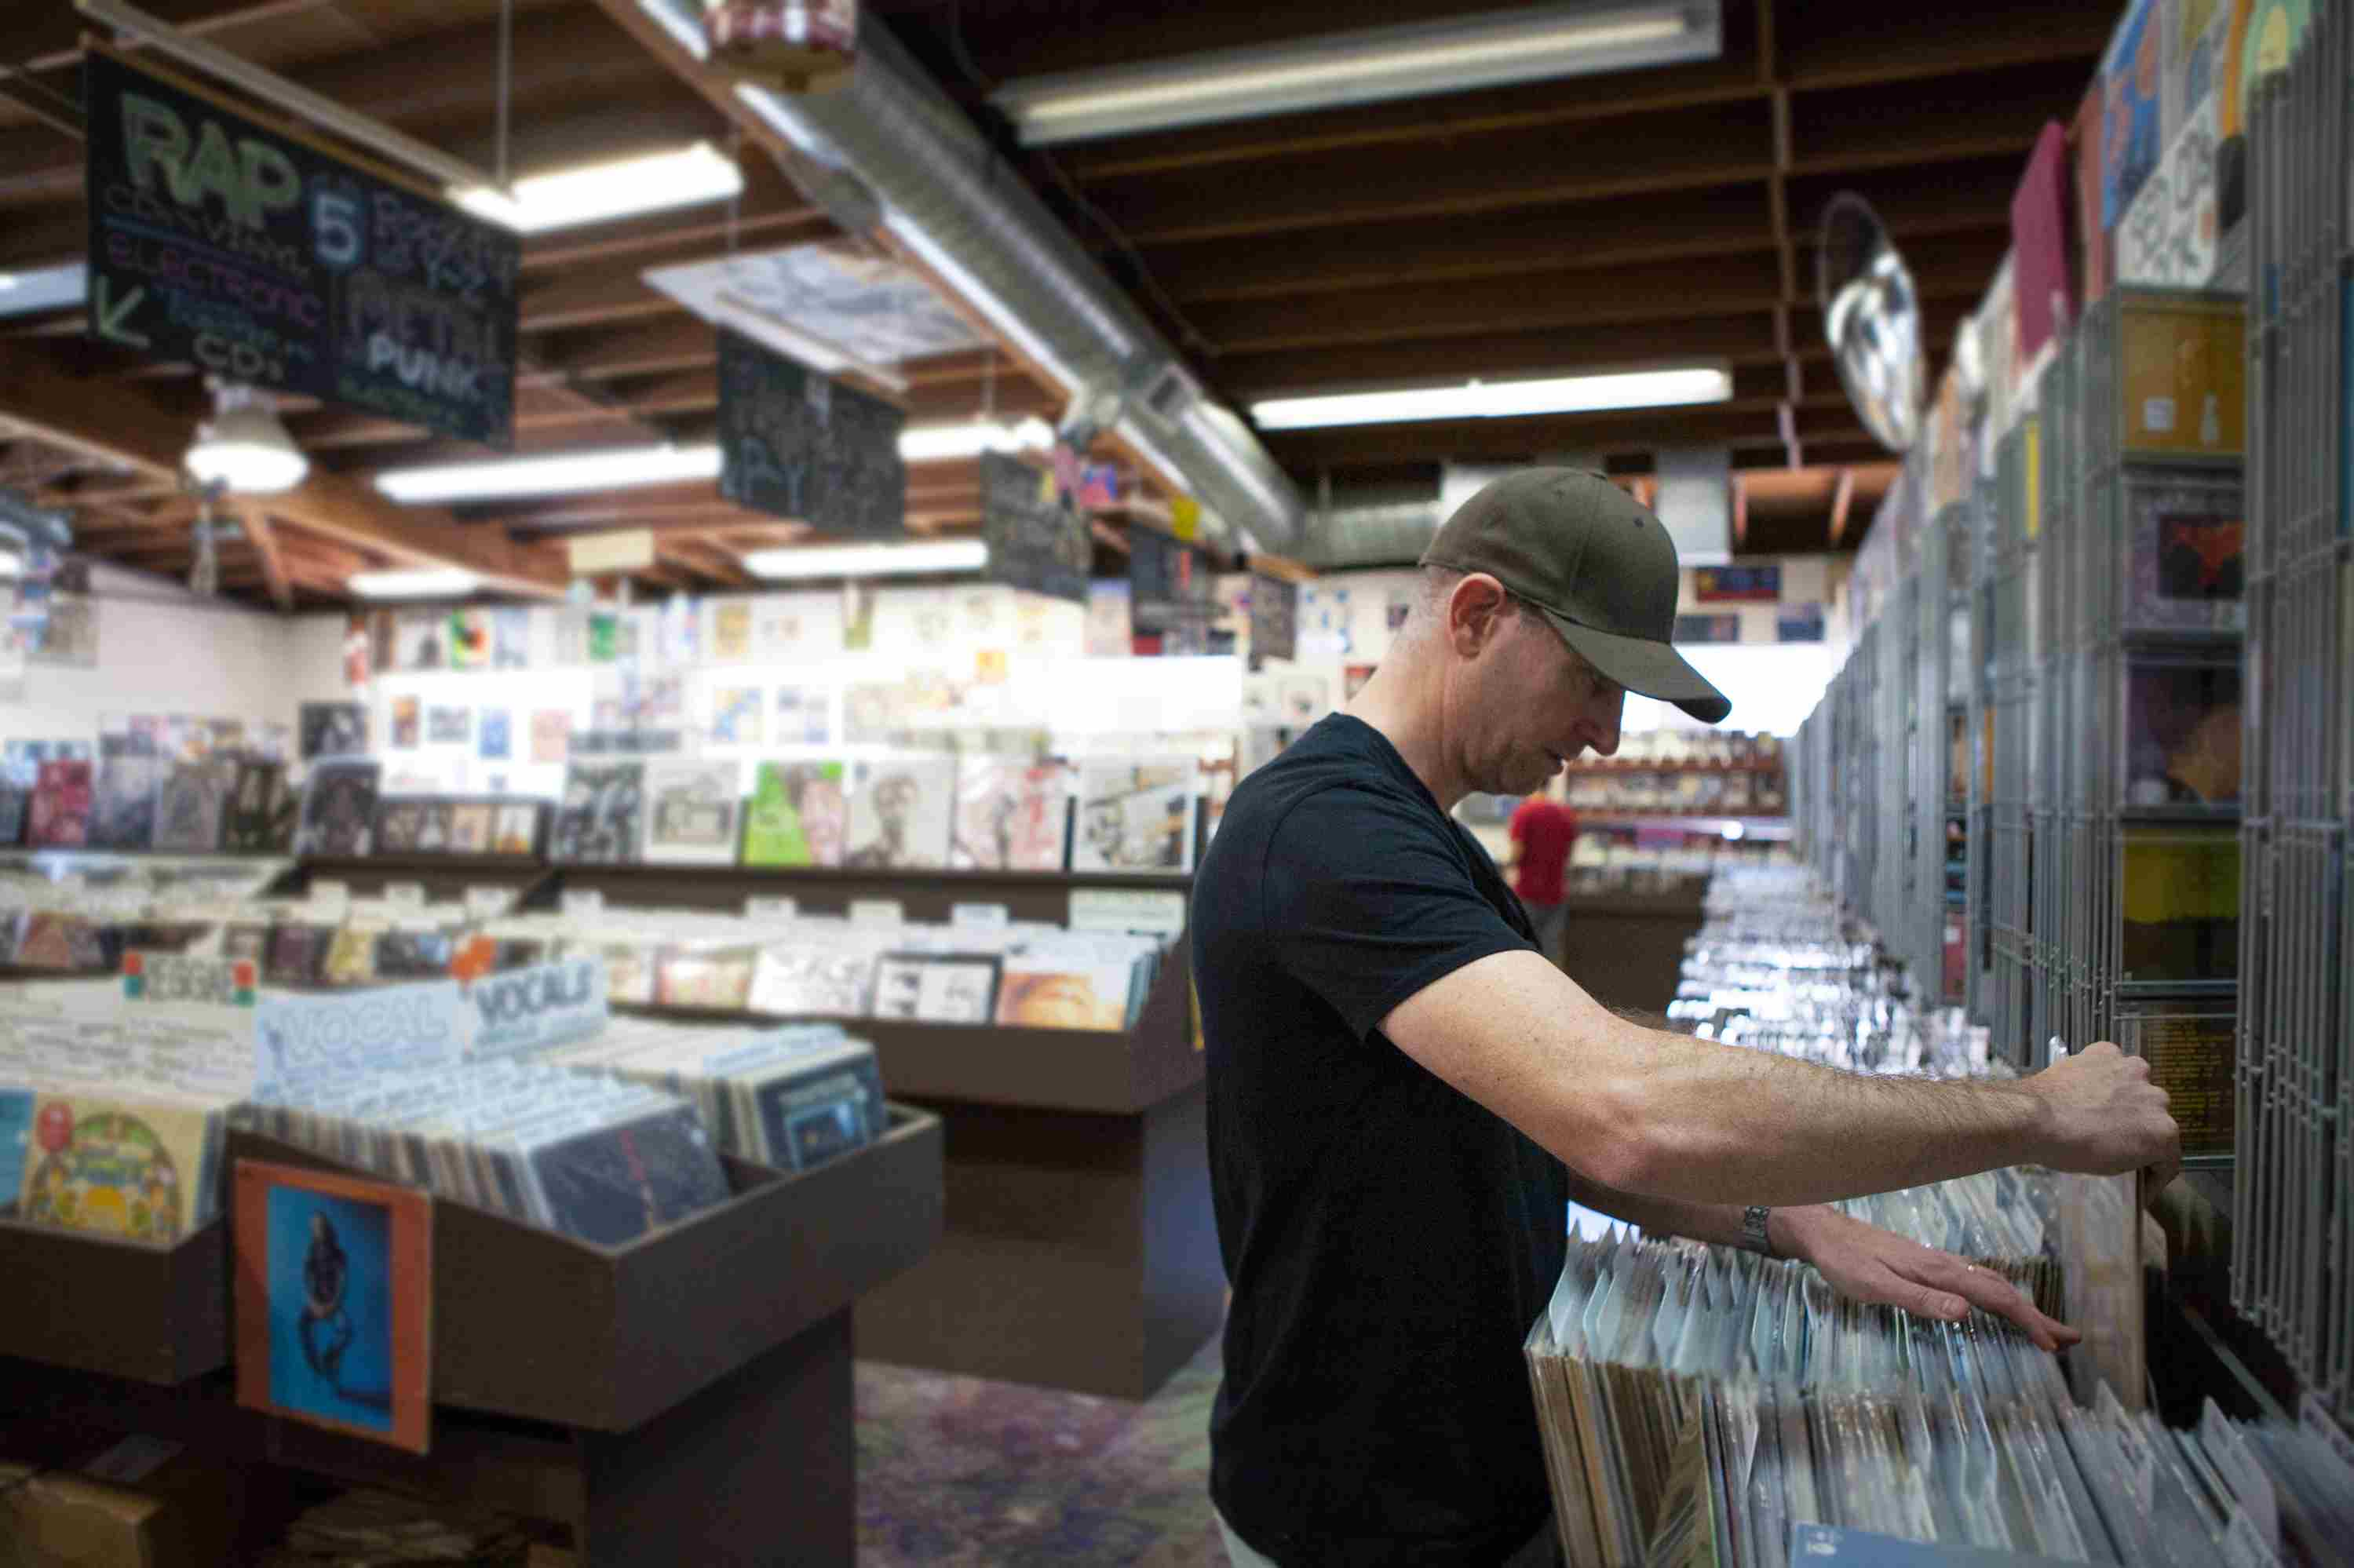 Man in record store looking through vinyl albums